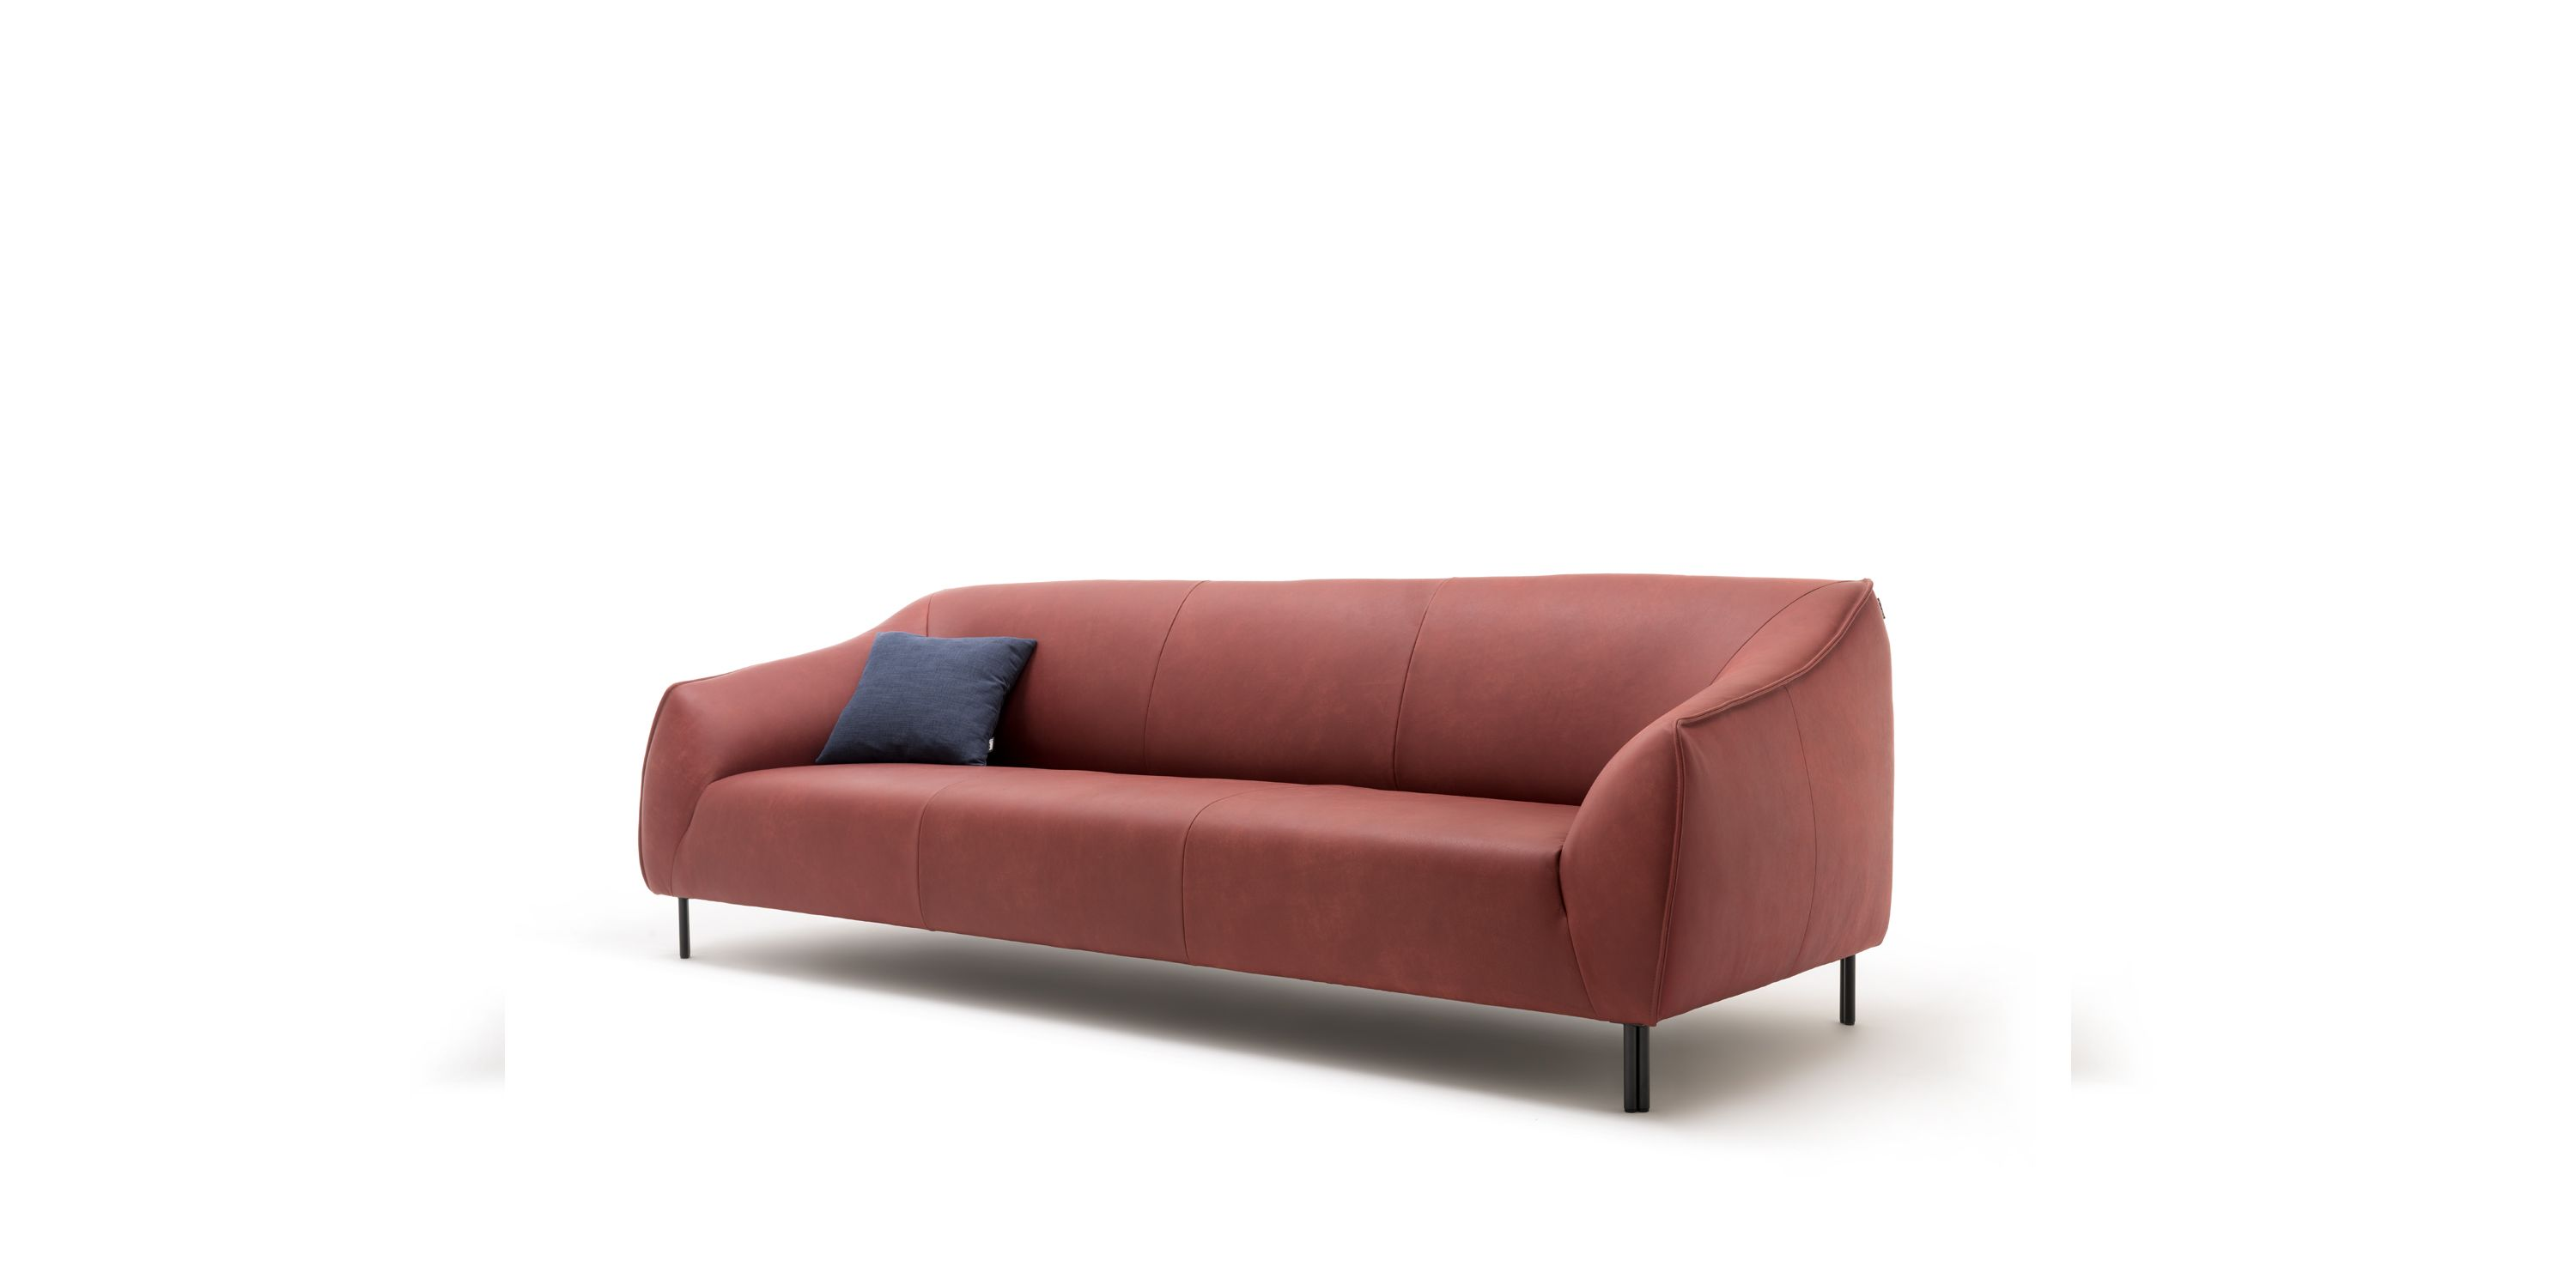 Rolf Benz Sofa Freistil The New Freistil By Rolf Benz 132 Sofa Has Arrived To Our